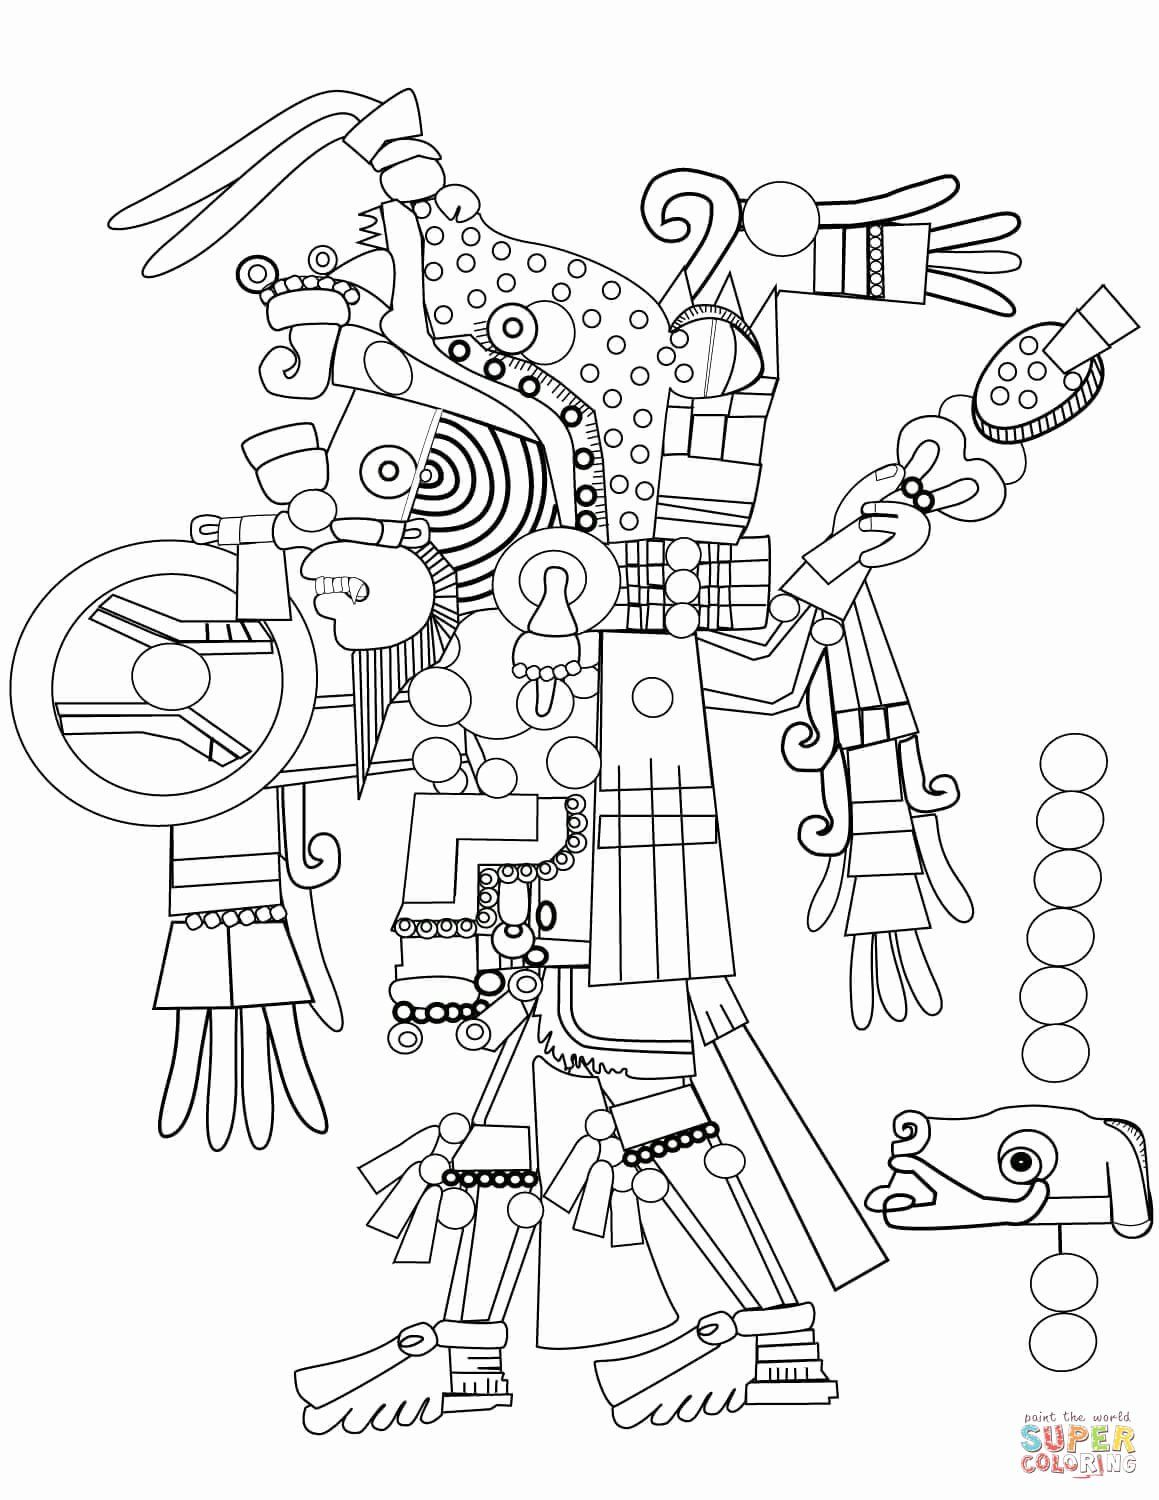 Christmas In Mexico Coloring Pages Fresh Mexico Coloring Pages In 2020 Aztec Art Art Coloring Pages